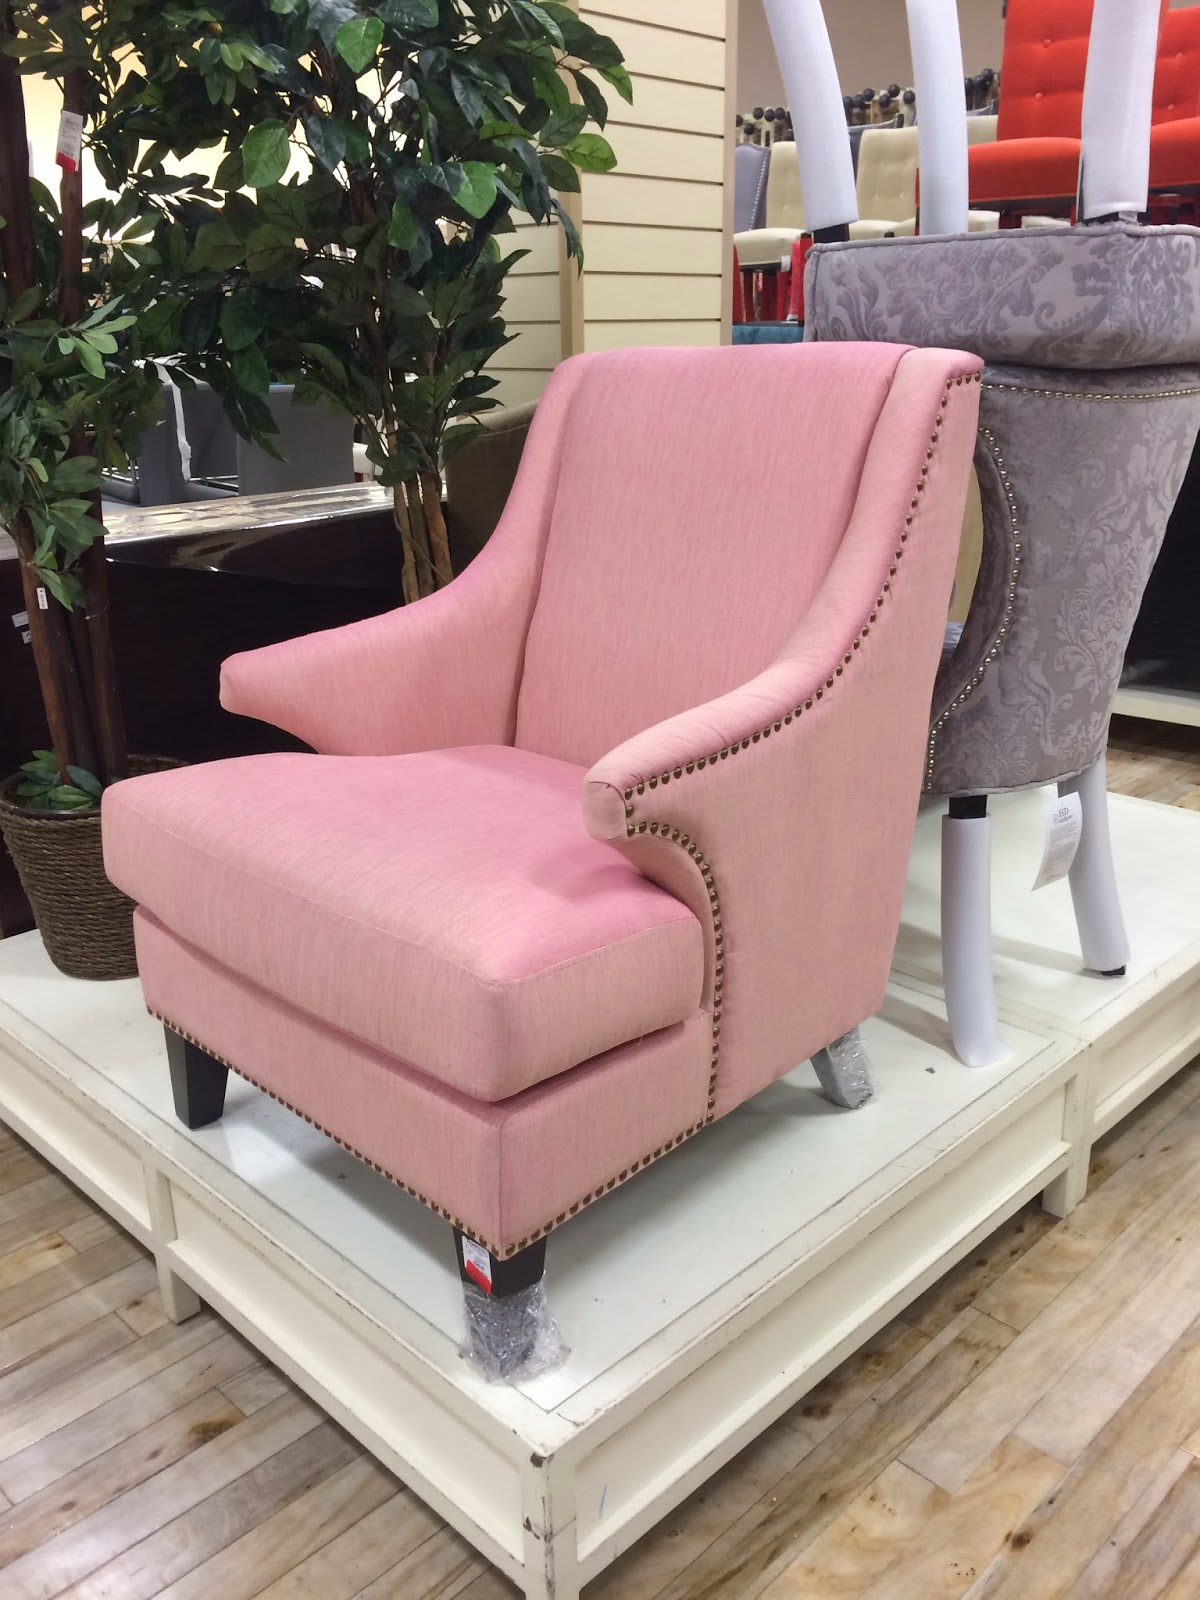 The pink zipper homesense just makes sense for Homesense coffee table